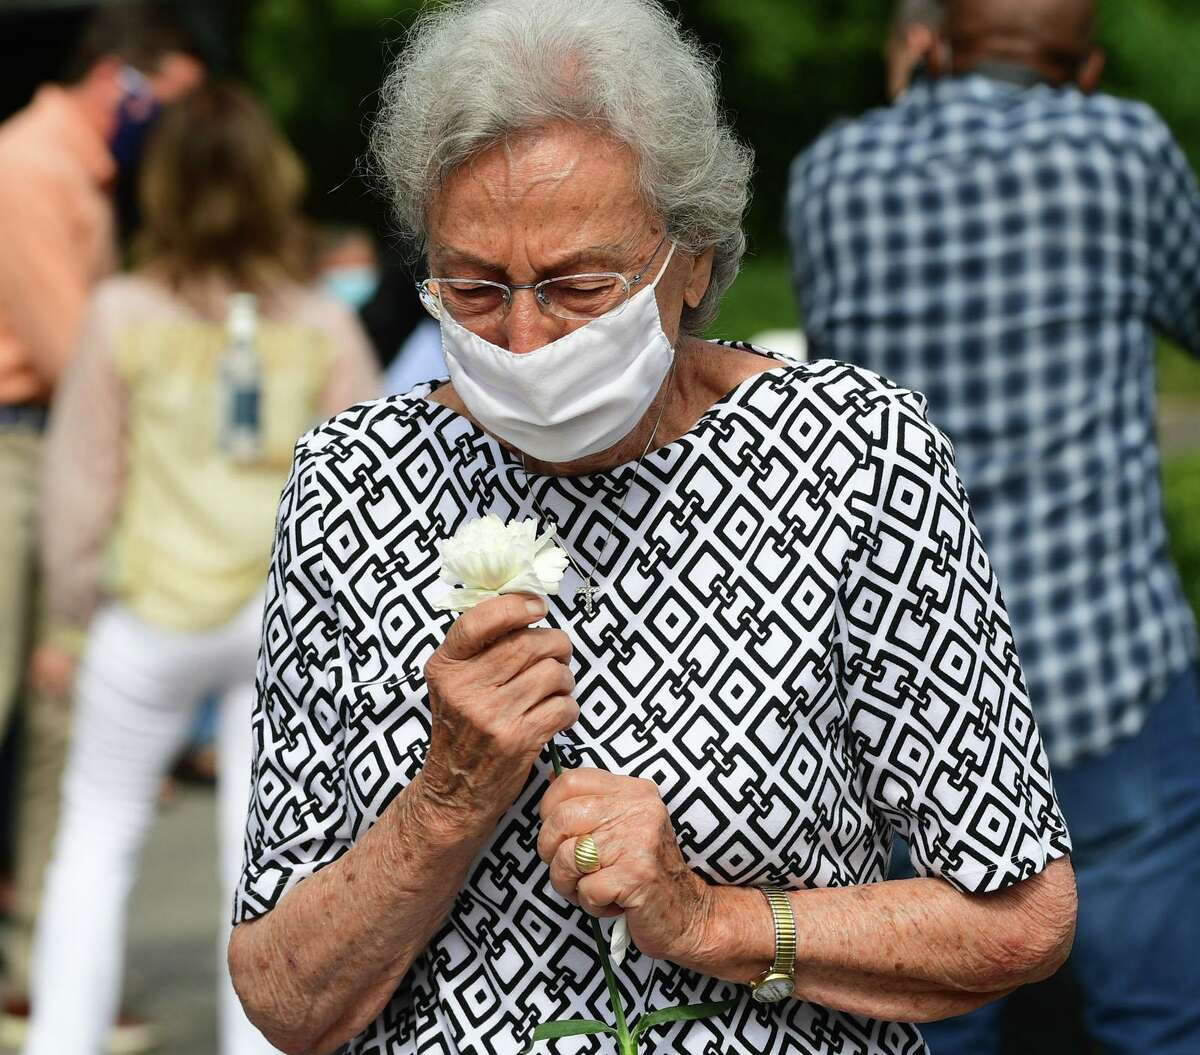 Lidia Amendola holds the white carnation she and other family members of those remembered at the Philip Tai-Lauria Memorial/Prayer Garden were given at the dedication ceremony on Aug. 15 at Our Lady of Fatmina Catholic Church. A granite plaque honors her late husband, Dr. Gregory Amendola.